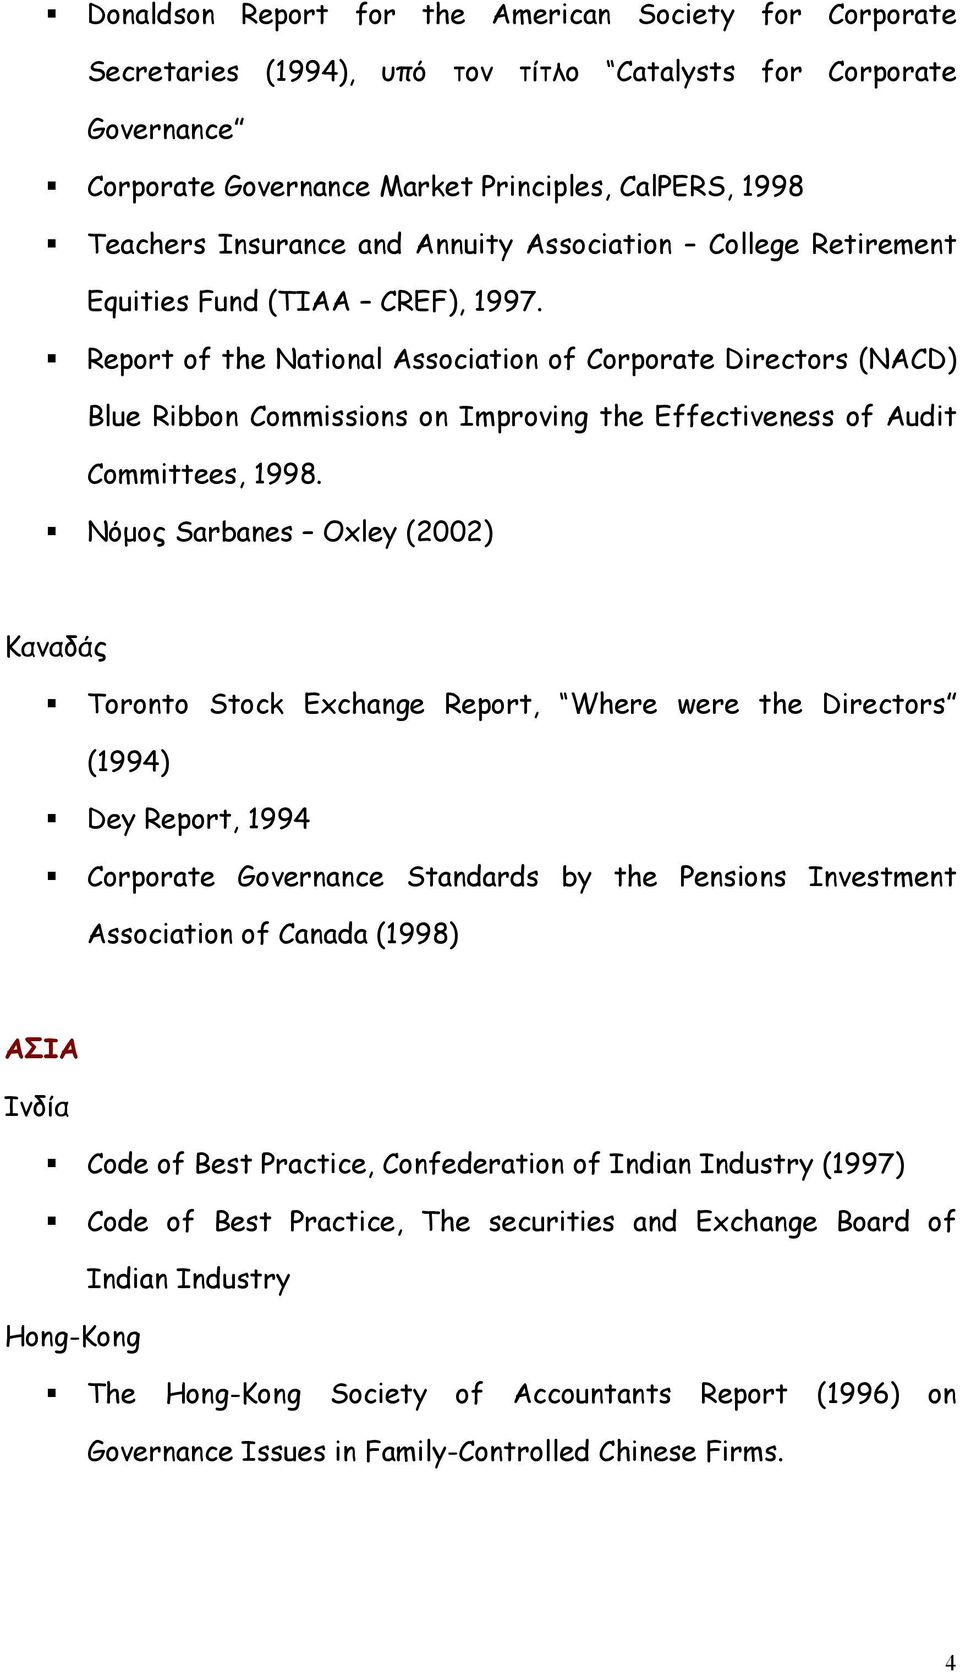 Report of the National Association of Corporate Directors (NACD) Blue Ribbon Commissions on Improving the Effectiveness of Audit Committees, 1998.